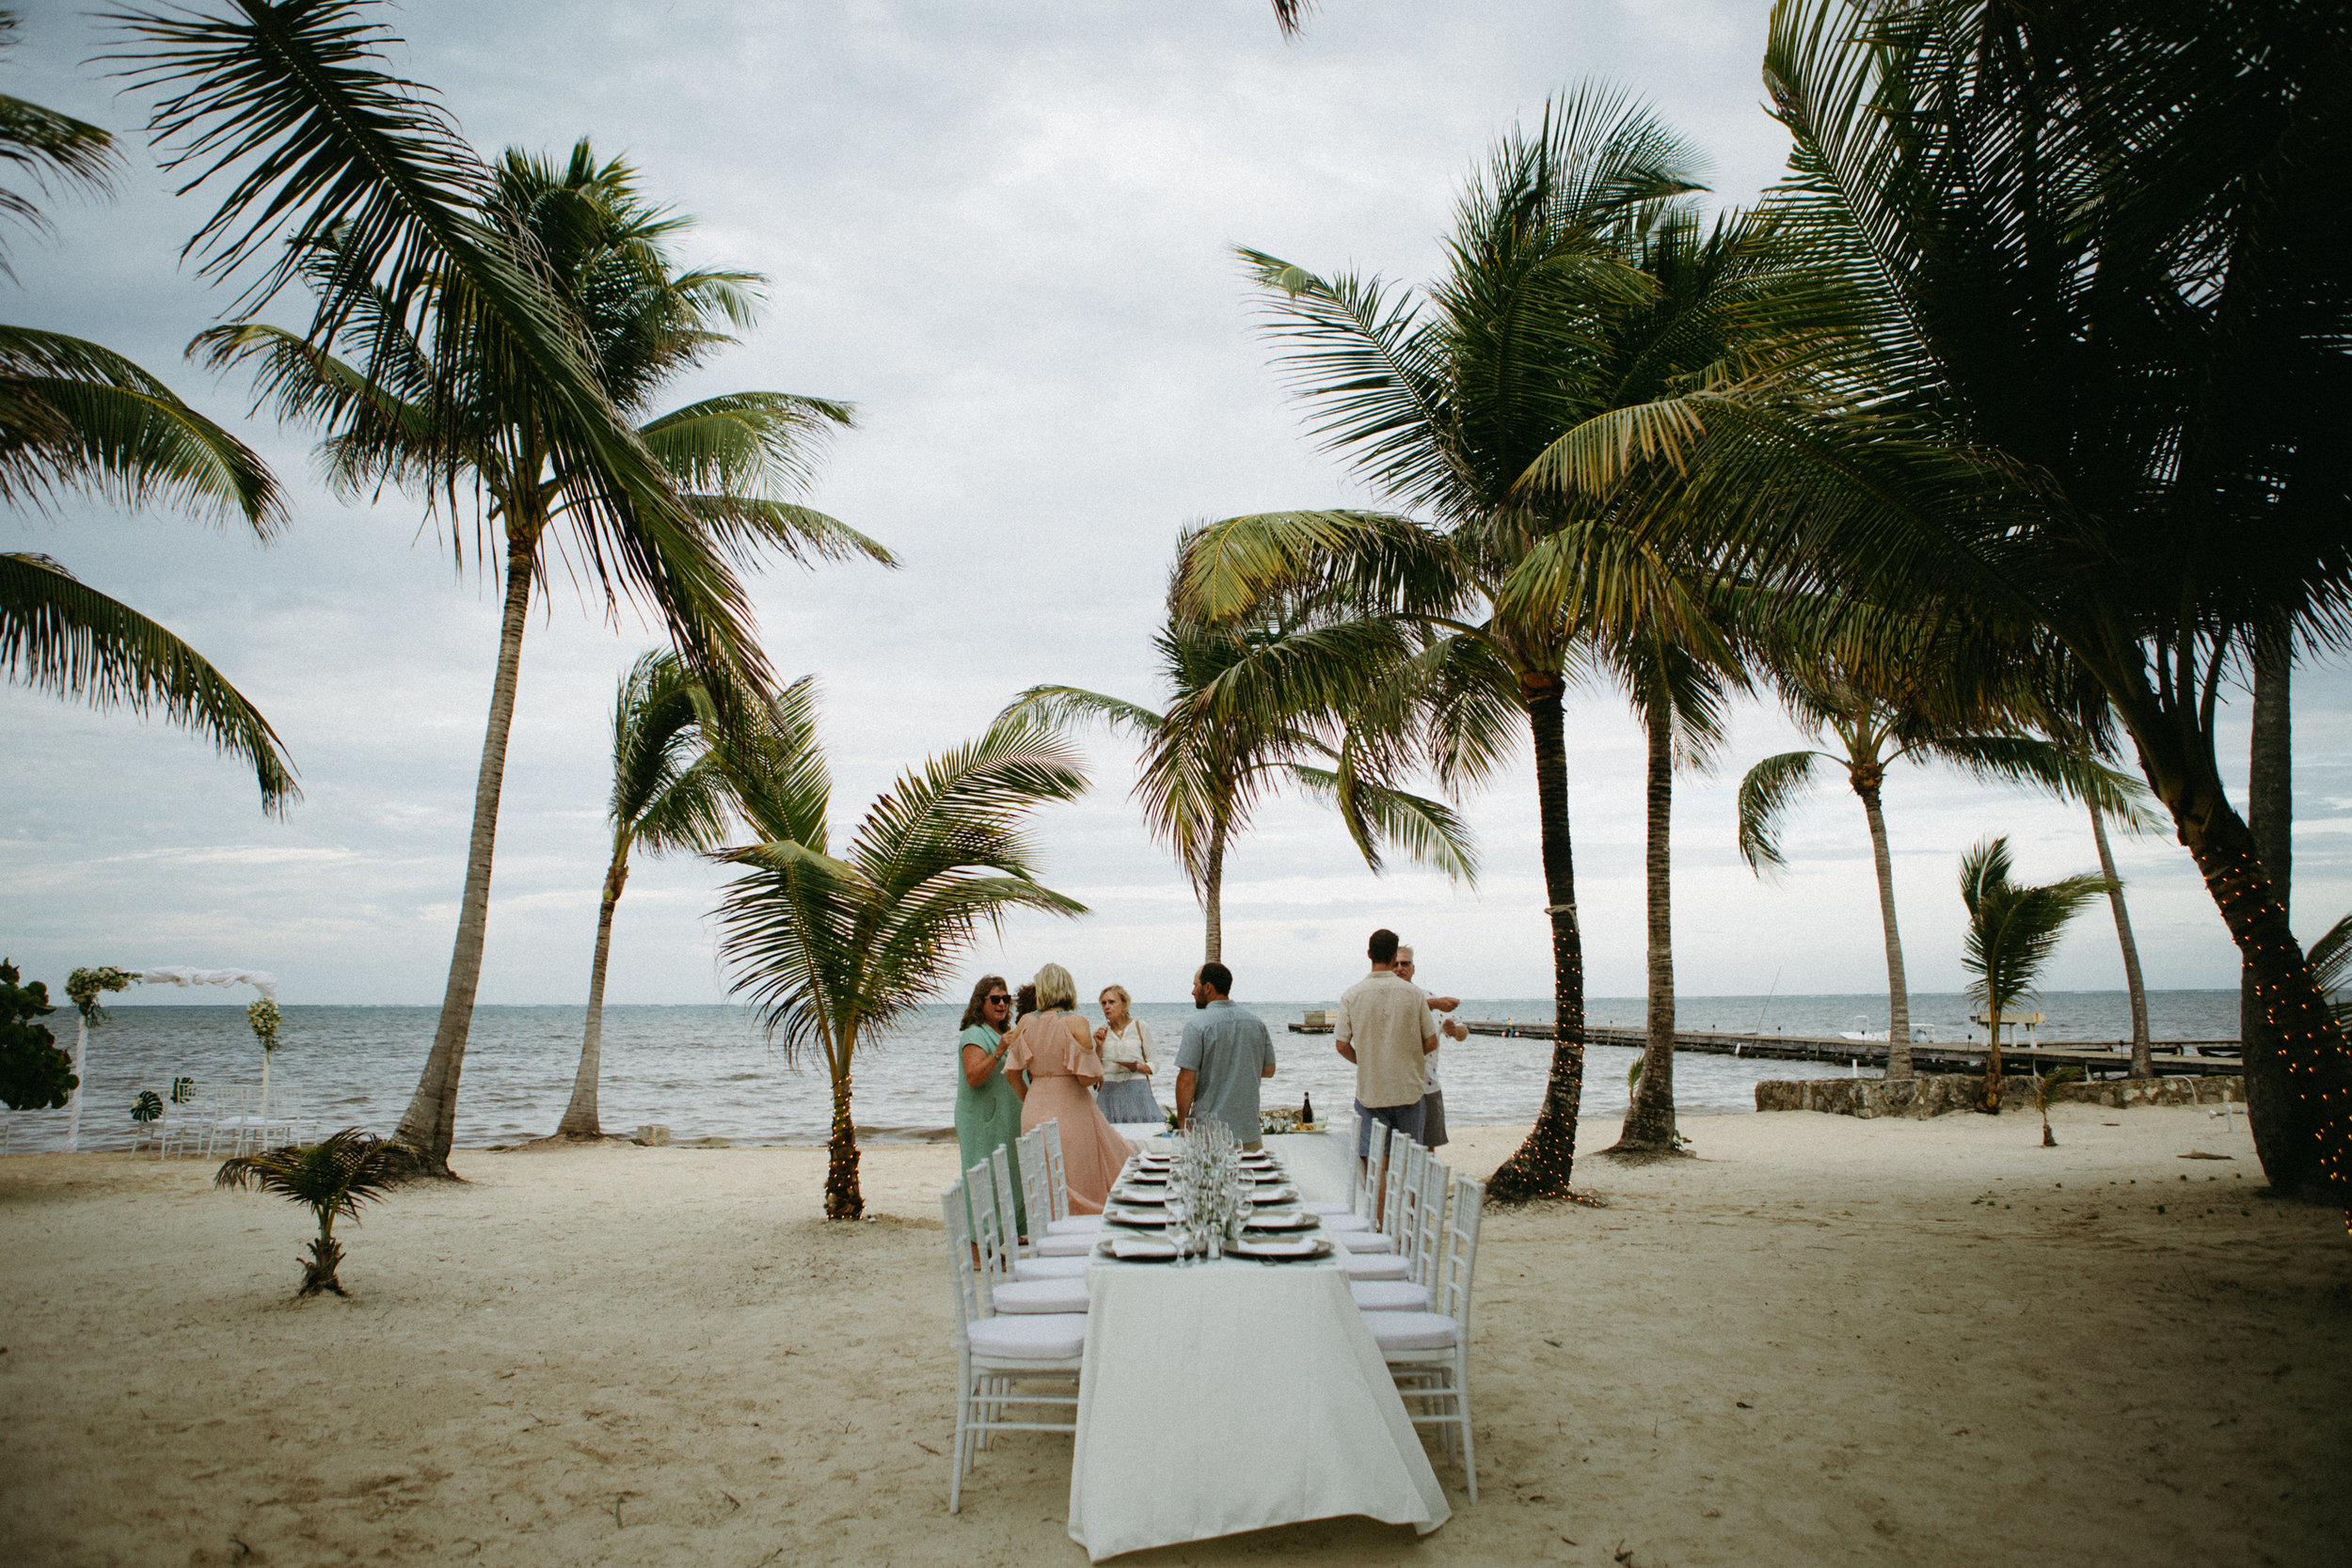 san-pescador-belize-wedding-christinemariephoto-j-k-106.jpg